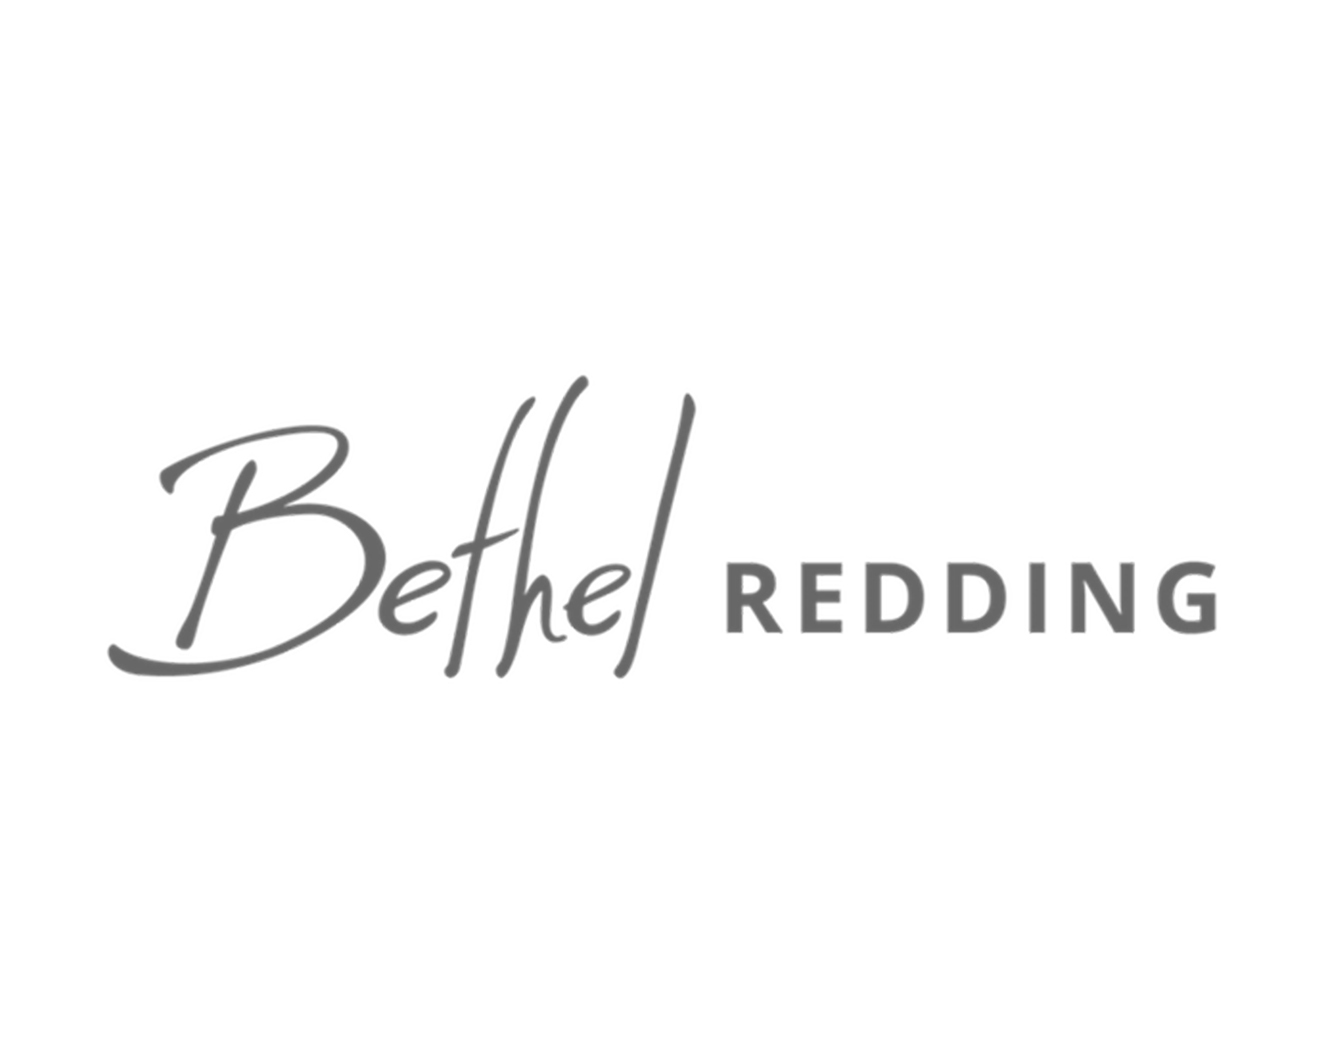 Bethel-Redding.jpg